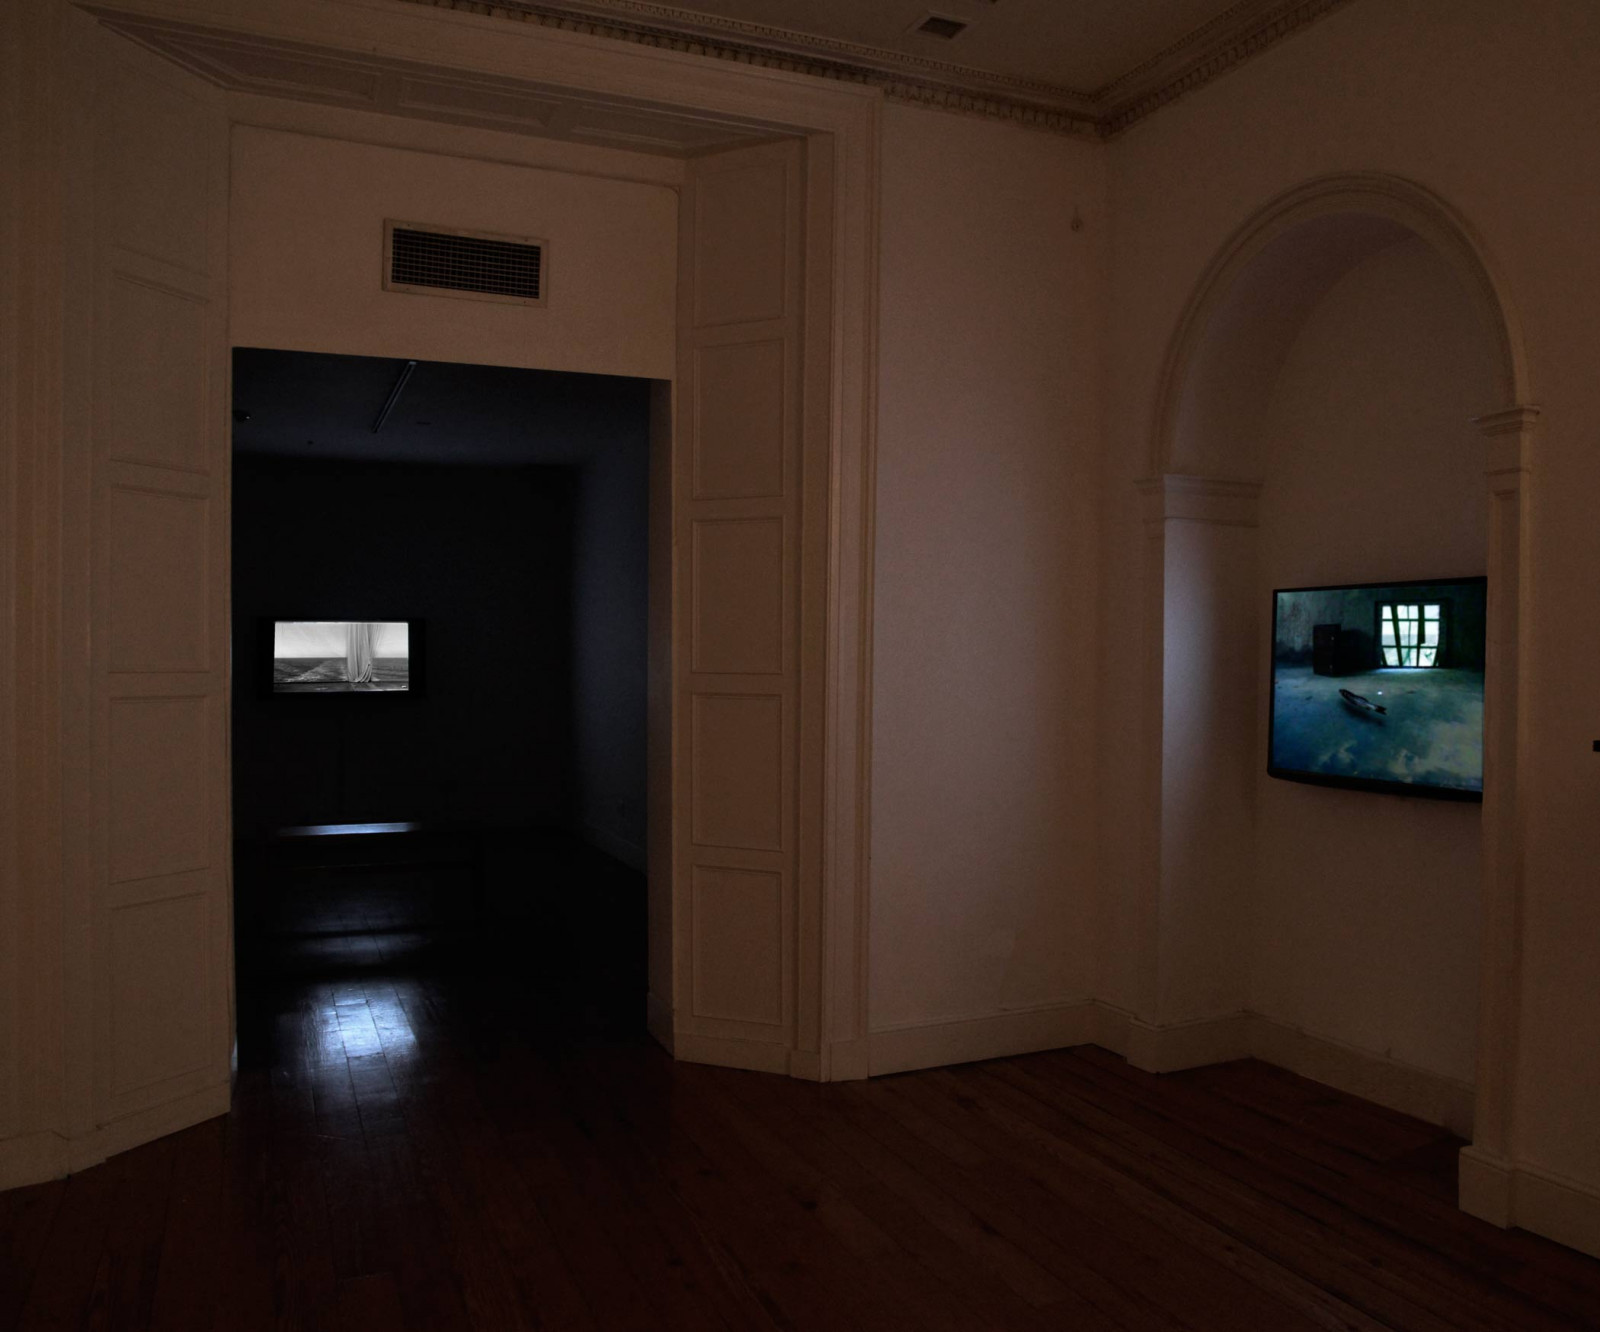 Galway Arts Centre, Ireland, 2010 (solo show). Curated by Maeve Mulrennan.